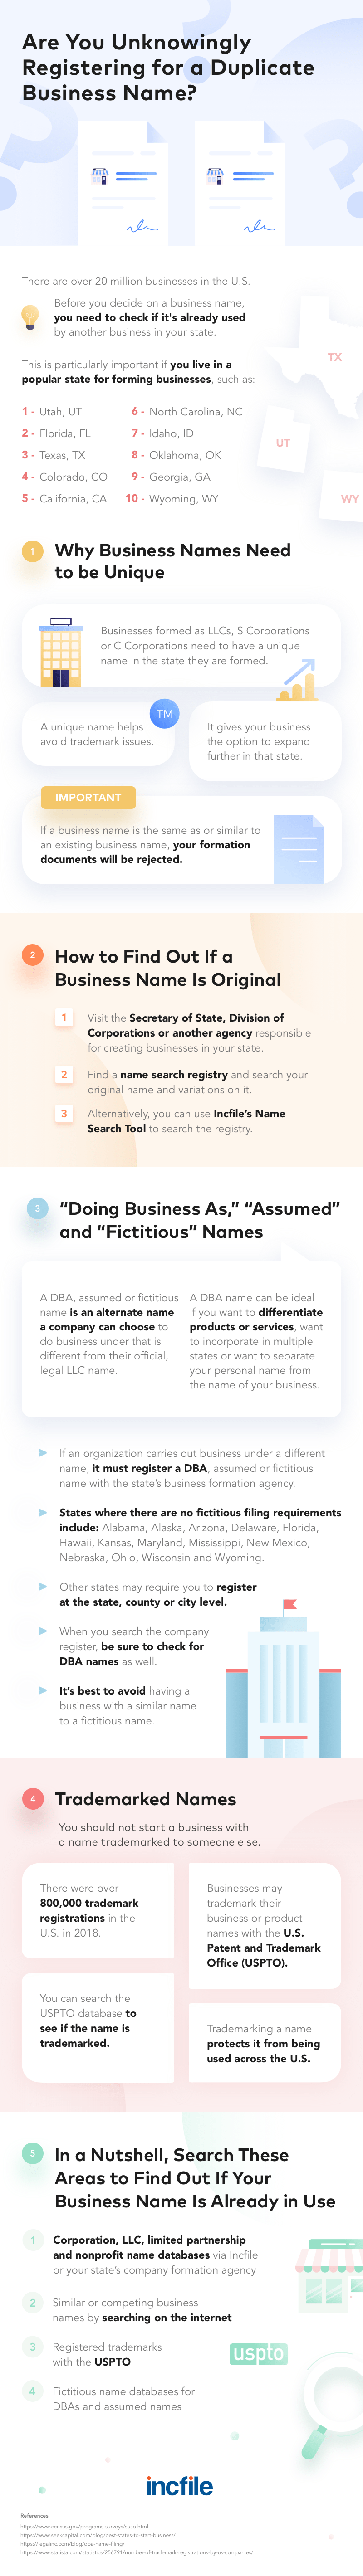 How to Check if a Business Name is Taken - Infographic